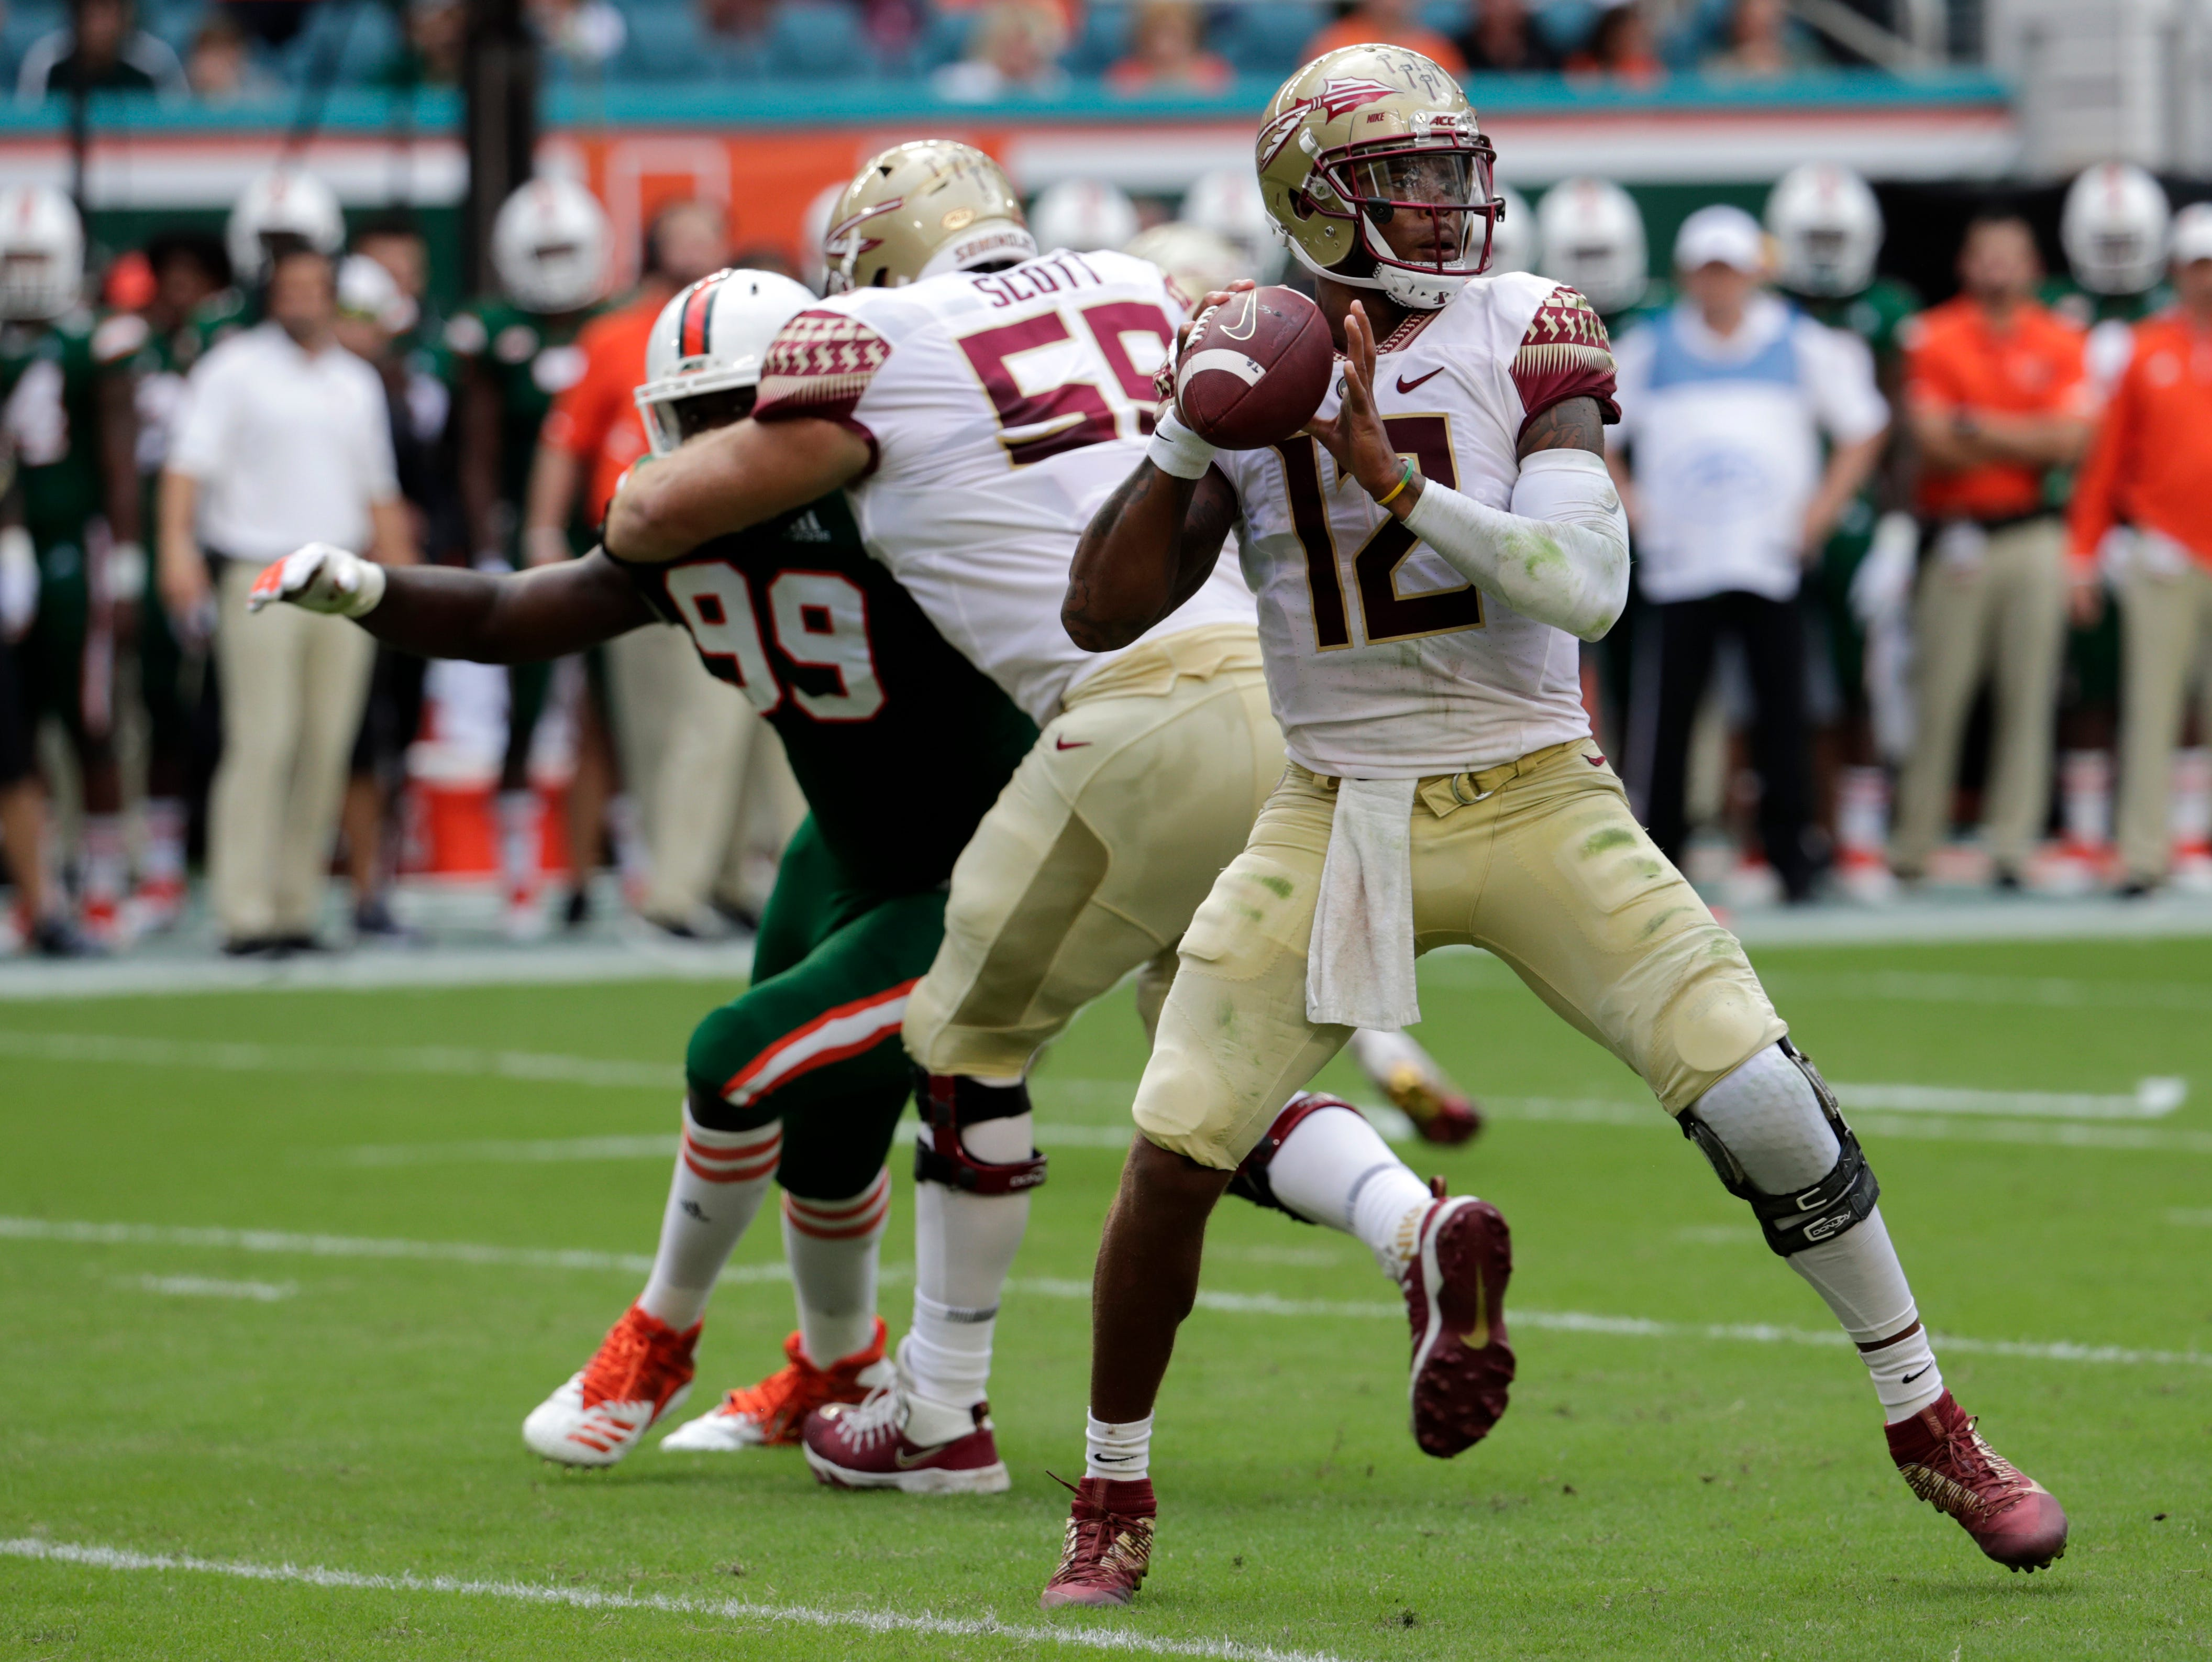 Florida State quarterback Deondre Francois (12) stands back to pass during the first half of an NCAA college football game against Miami, Saturday, Oct. 6, 2018, in Miami Gardens, Fla. (AP Photo/Lynne Sladky)